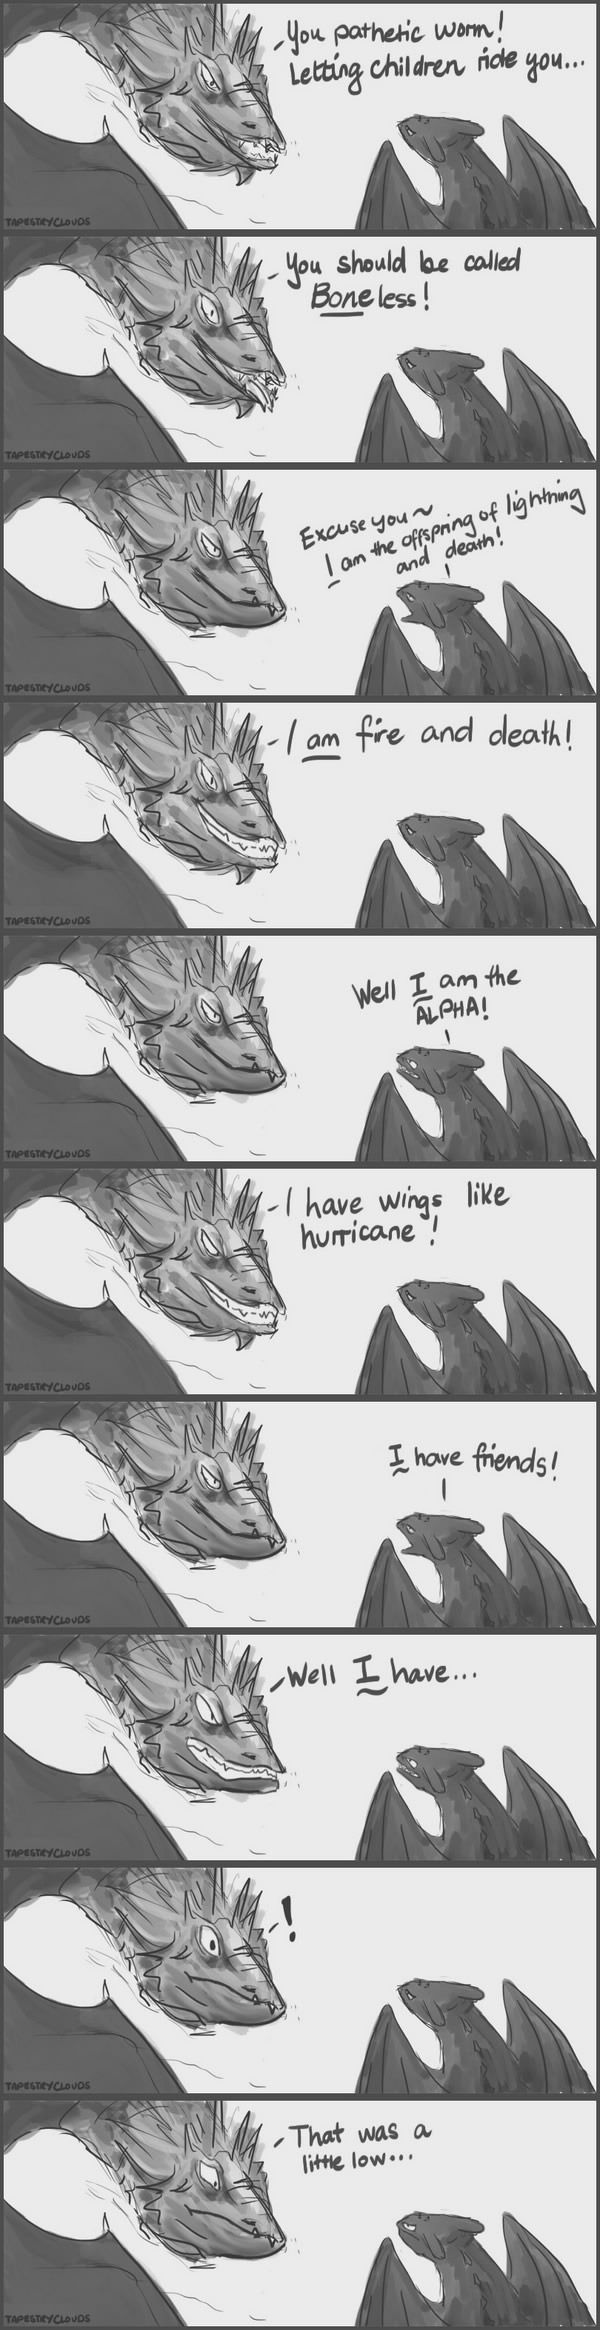 Smaug meets Toothless